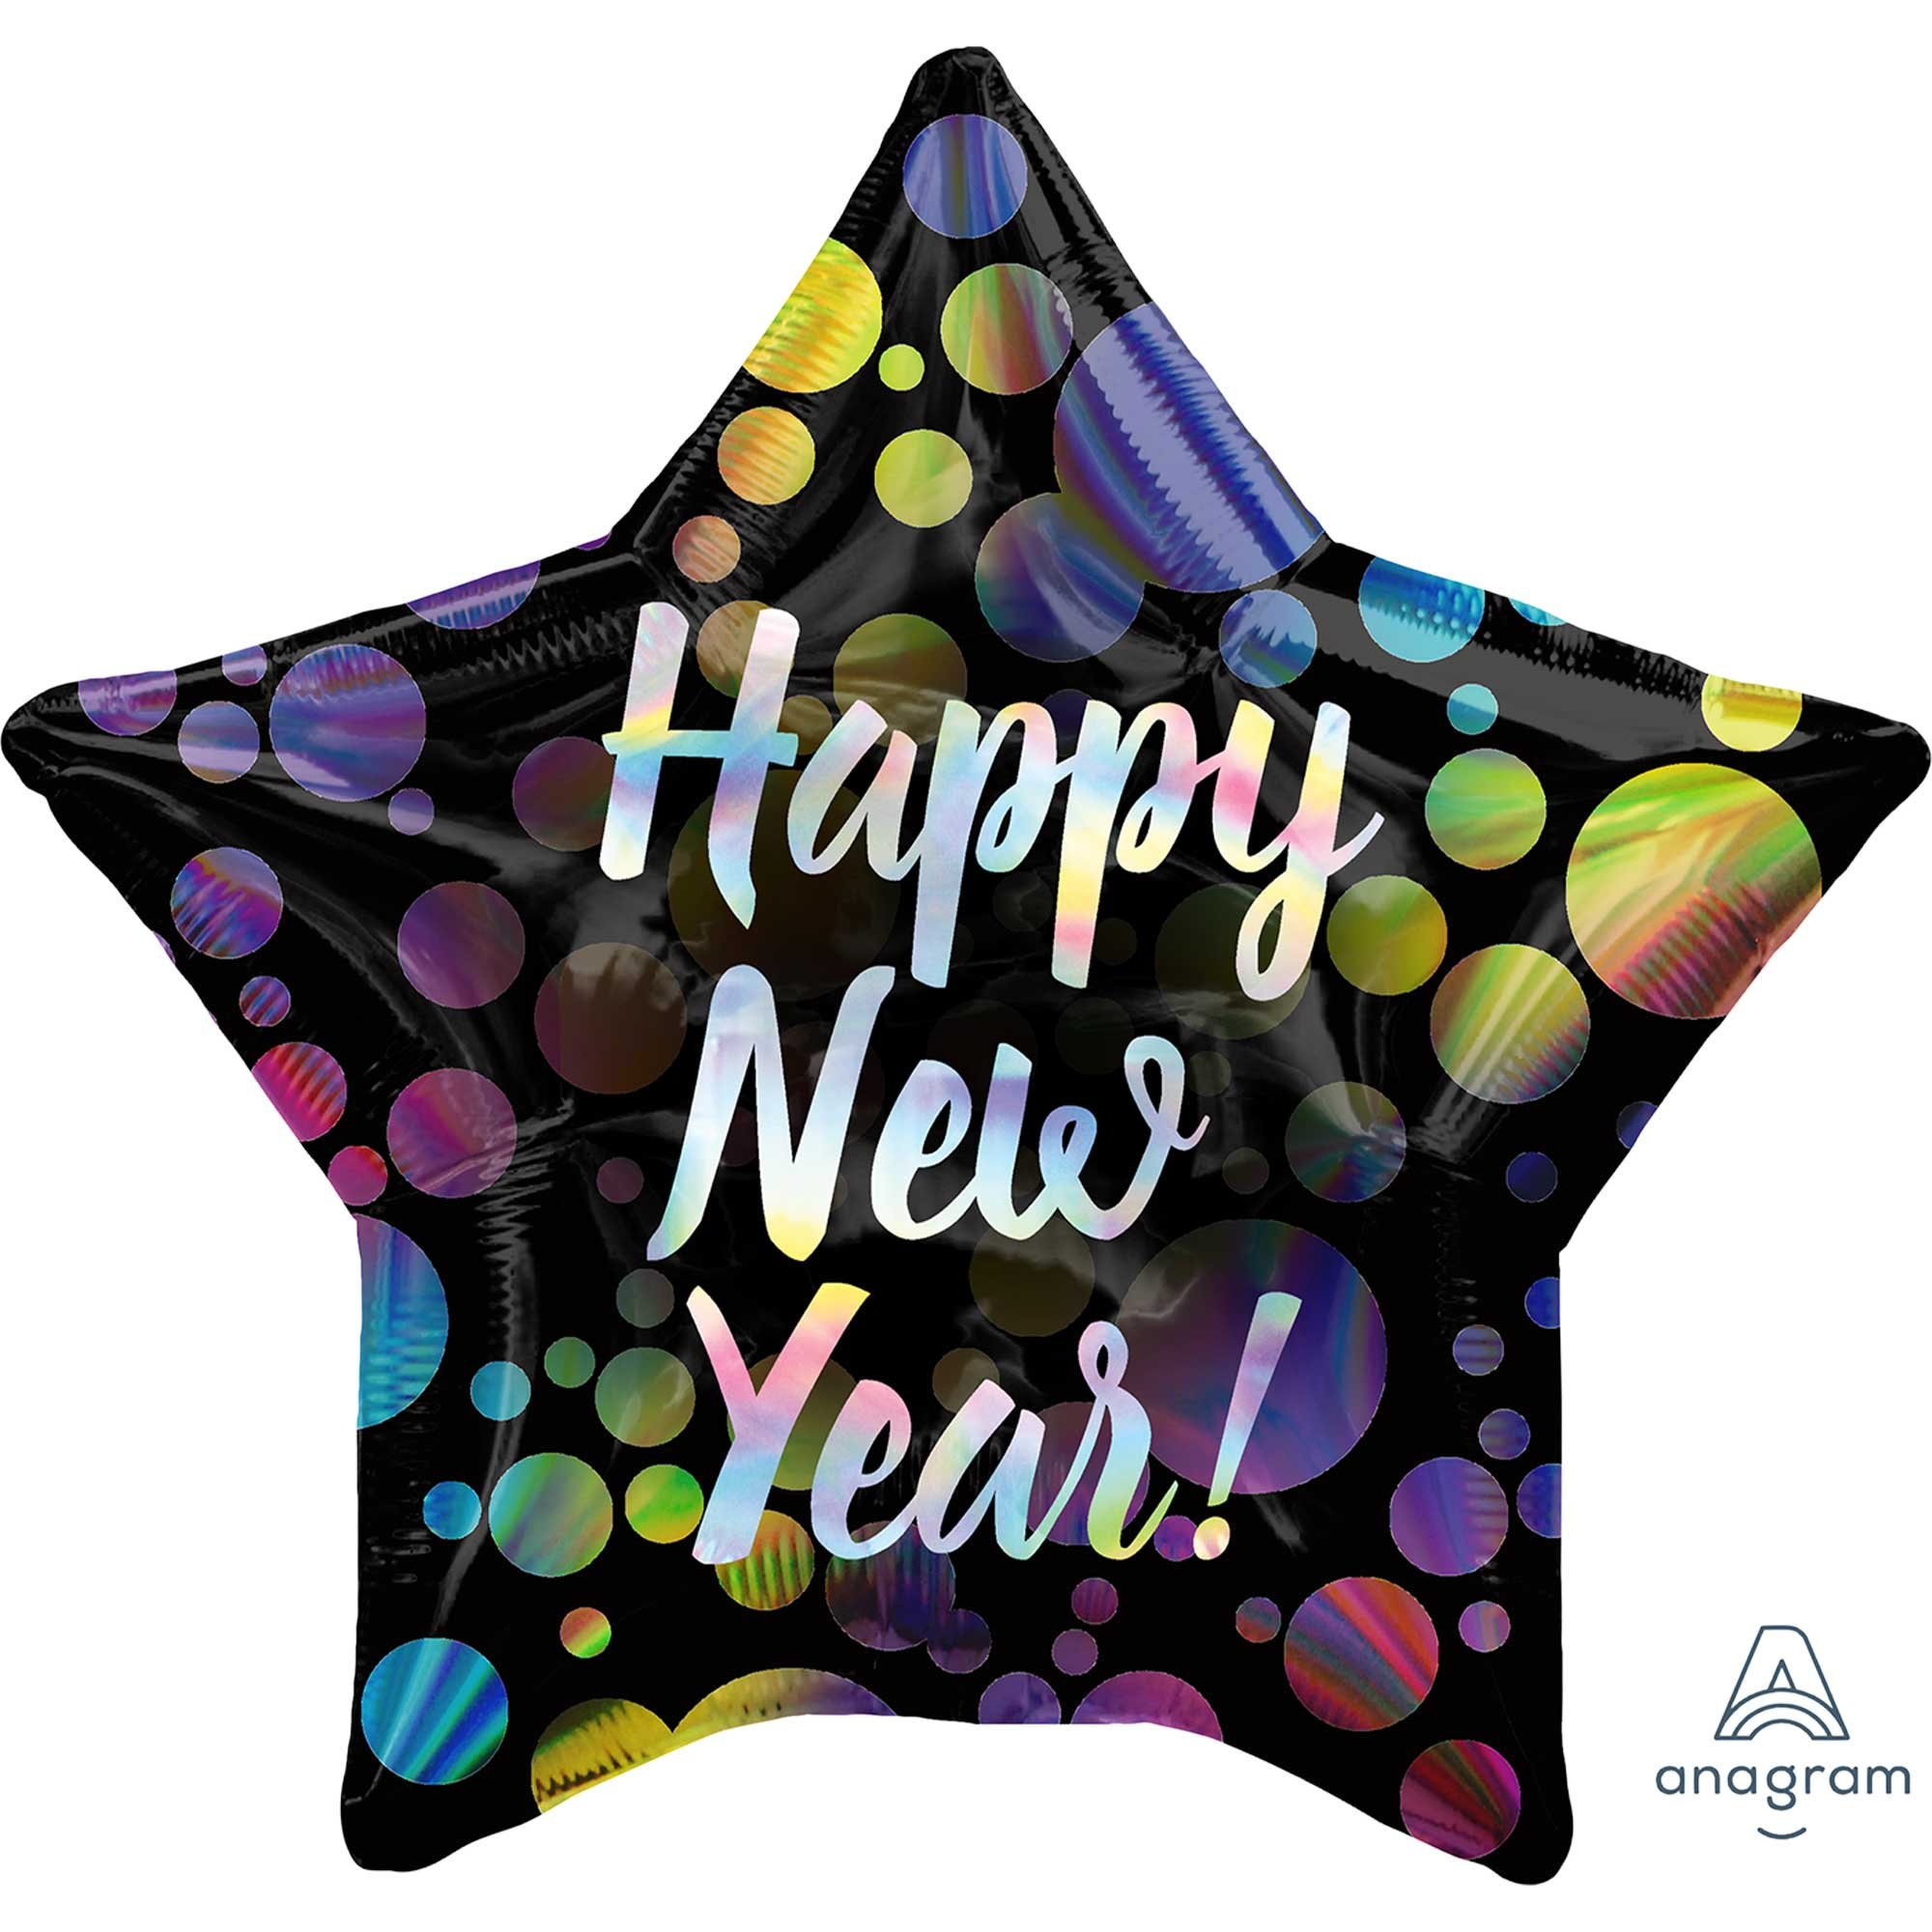 45cm Standard Holographic Iridescent Happy New Year Bubbles Star S55